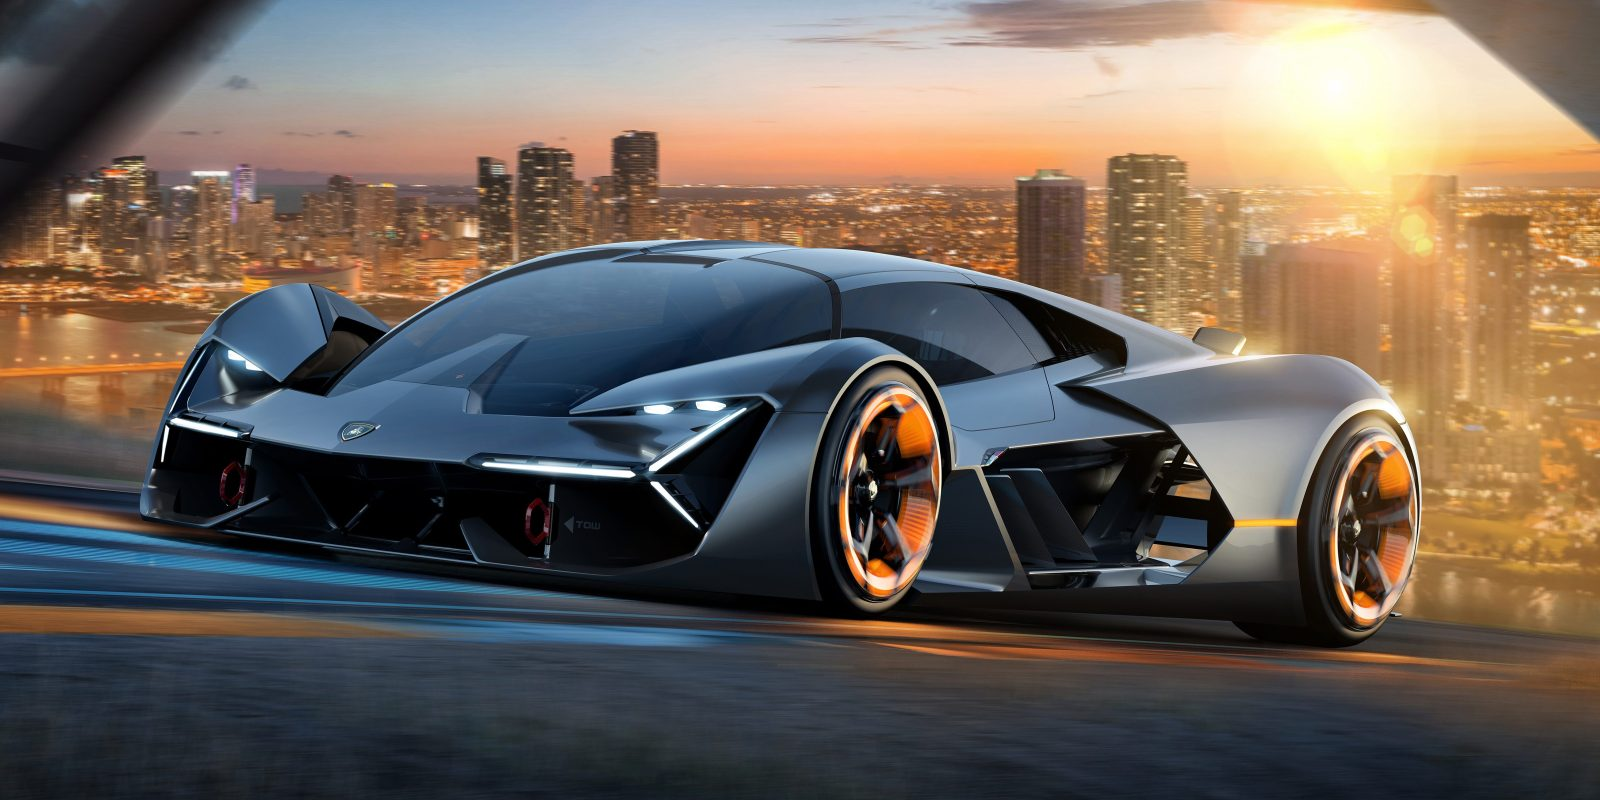 Lamborghini Unveils New Insane Looking Electric Supercar Concept